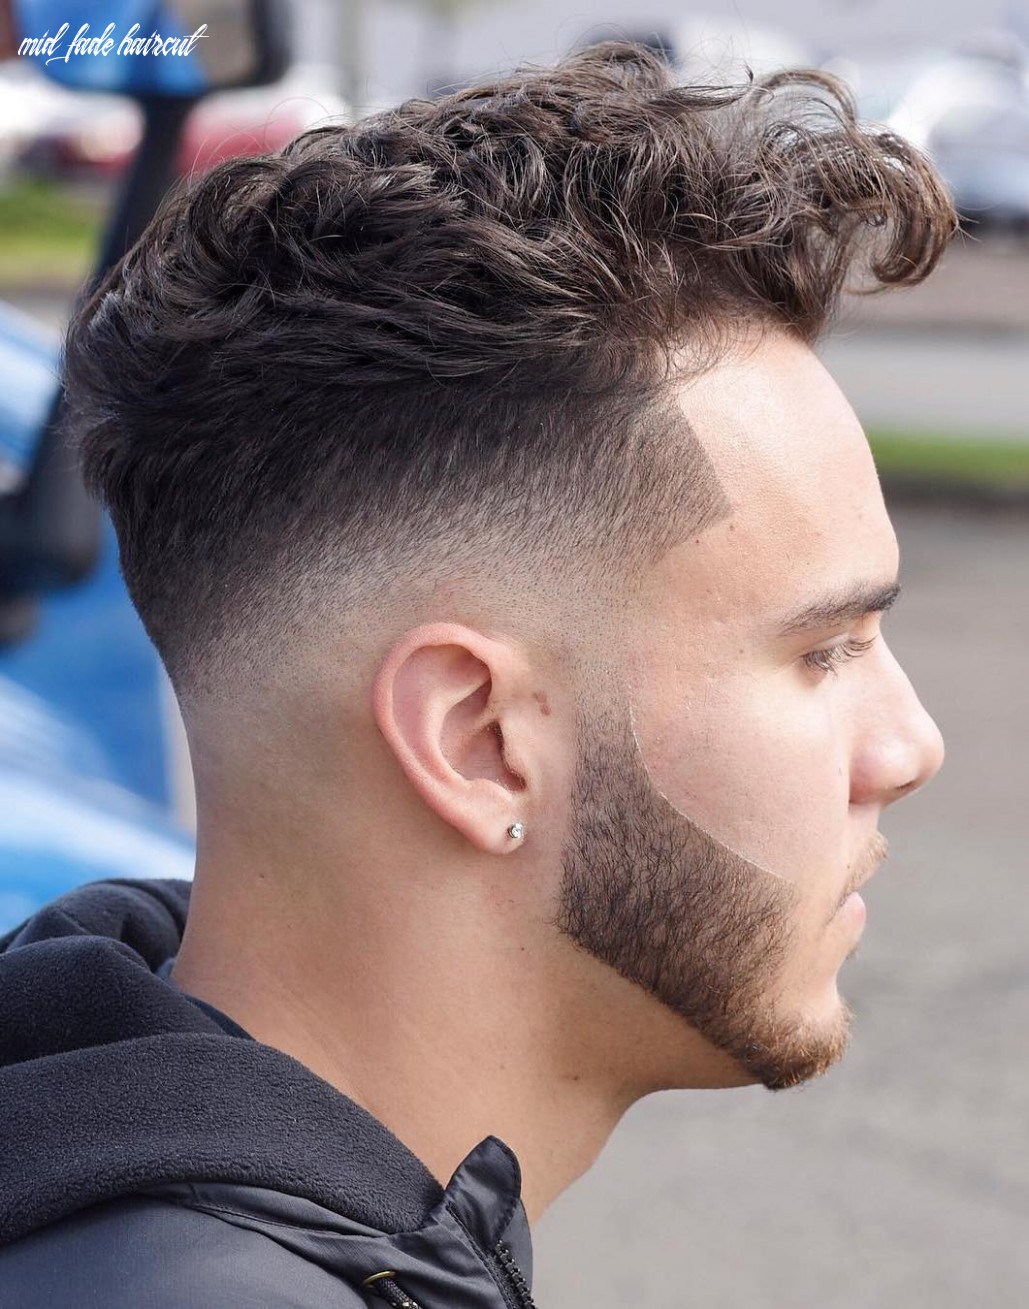 8 the most fashionable mid fade haircuts for men mid fade haircut